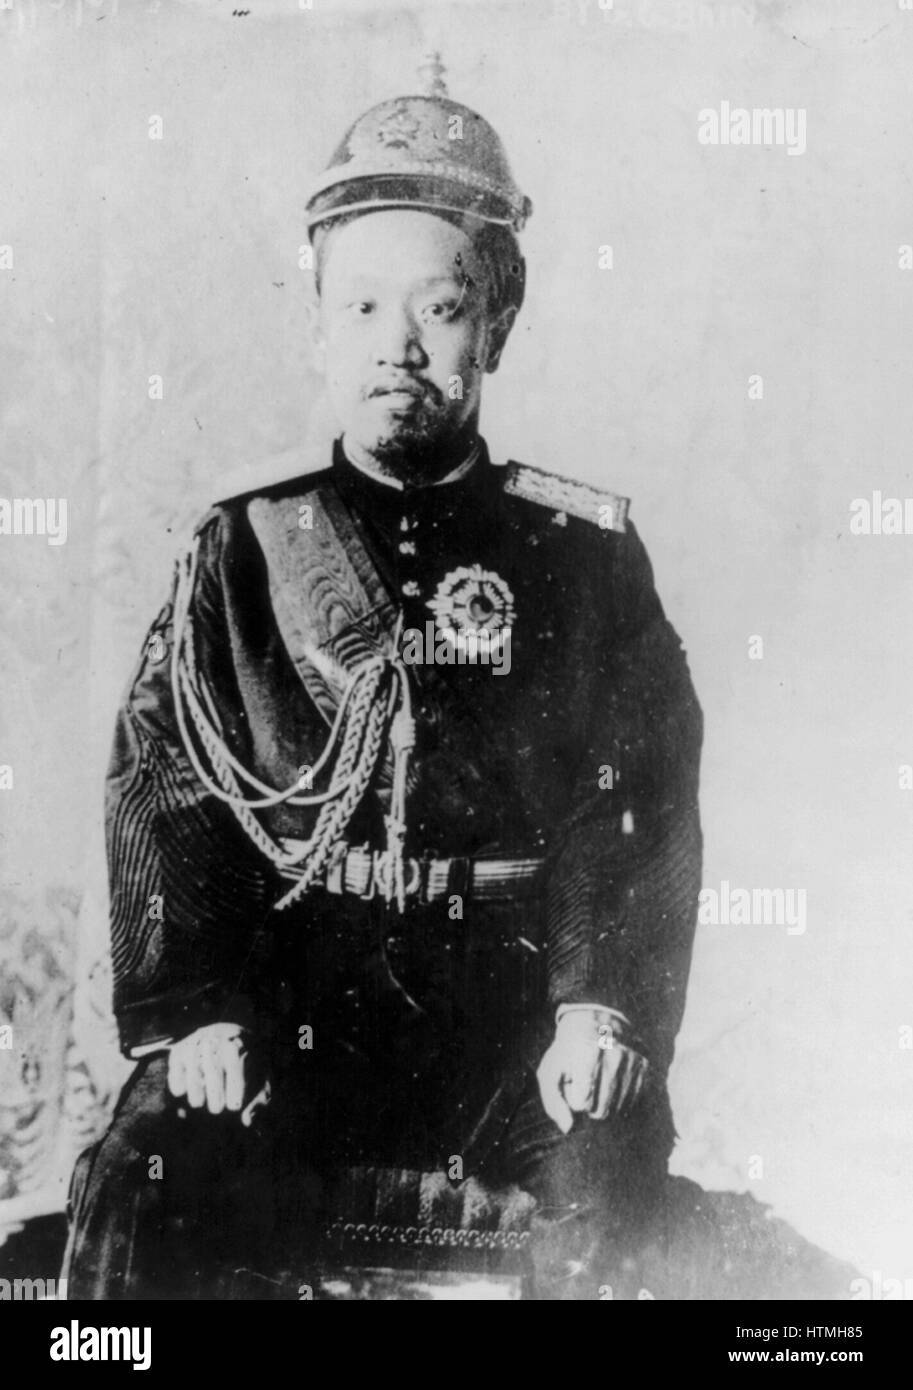 Prince Imperial Ui, the Prince Imperial of Korea, (1877 – 1955) fifth son of Emperor Gwangmu of Korea. He could - Stock Image